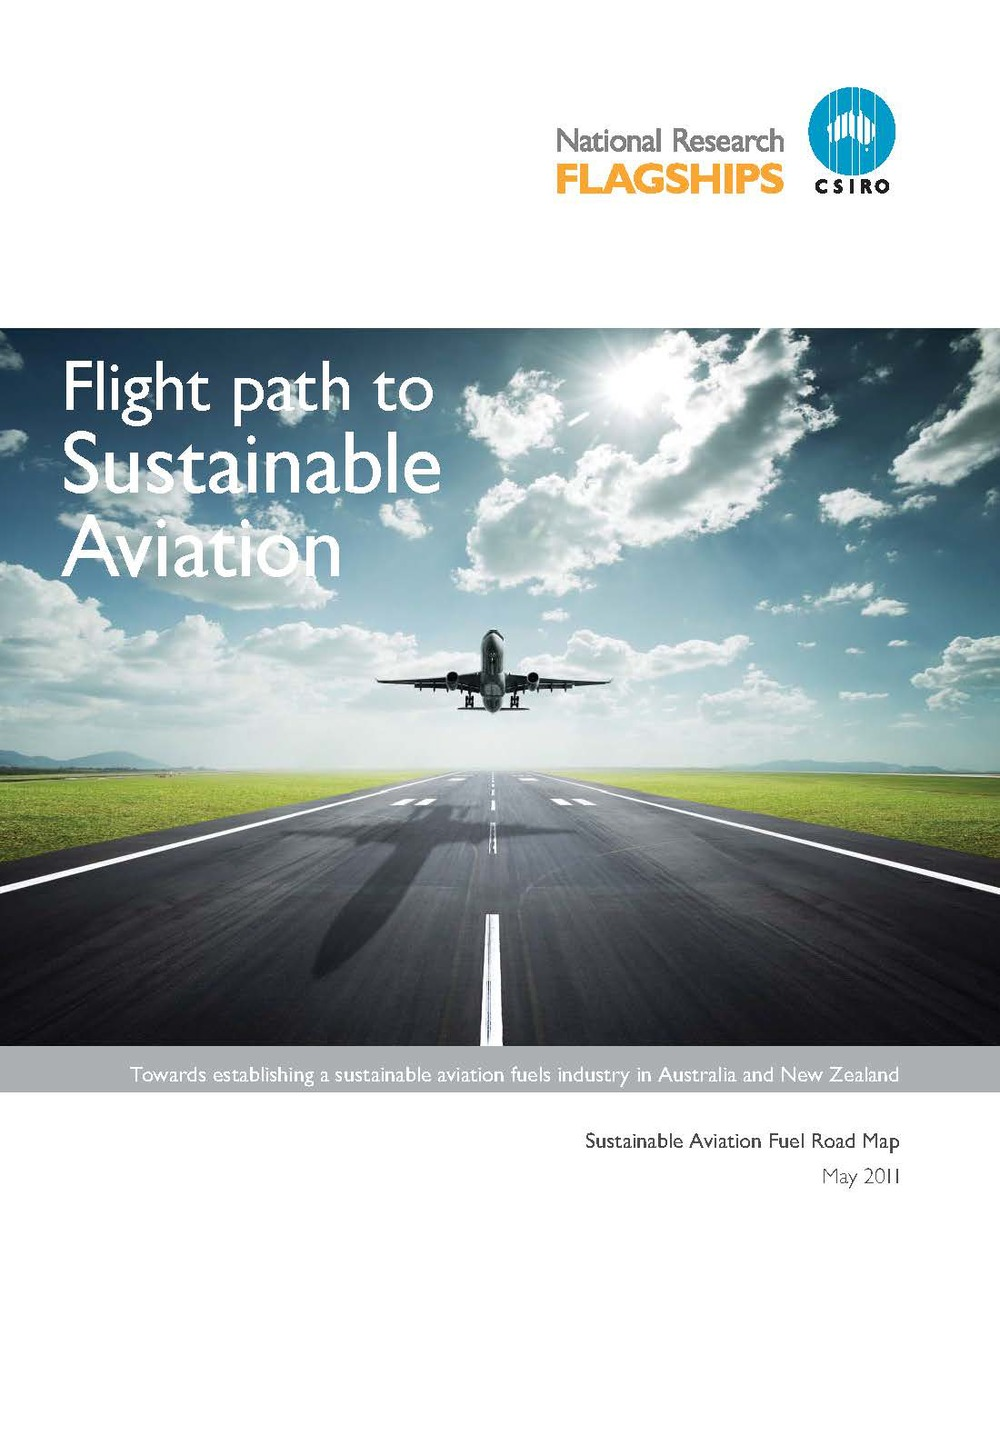 FlightpathSustainableAviation_ETF_pdf Standard 1.jpg